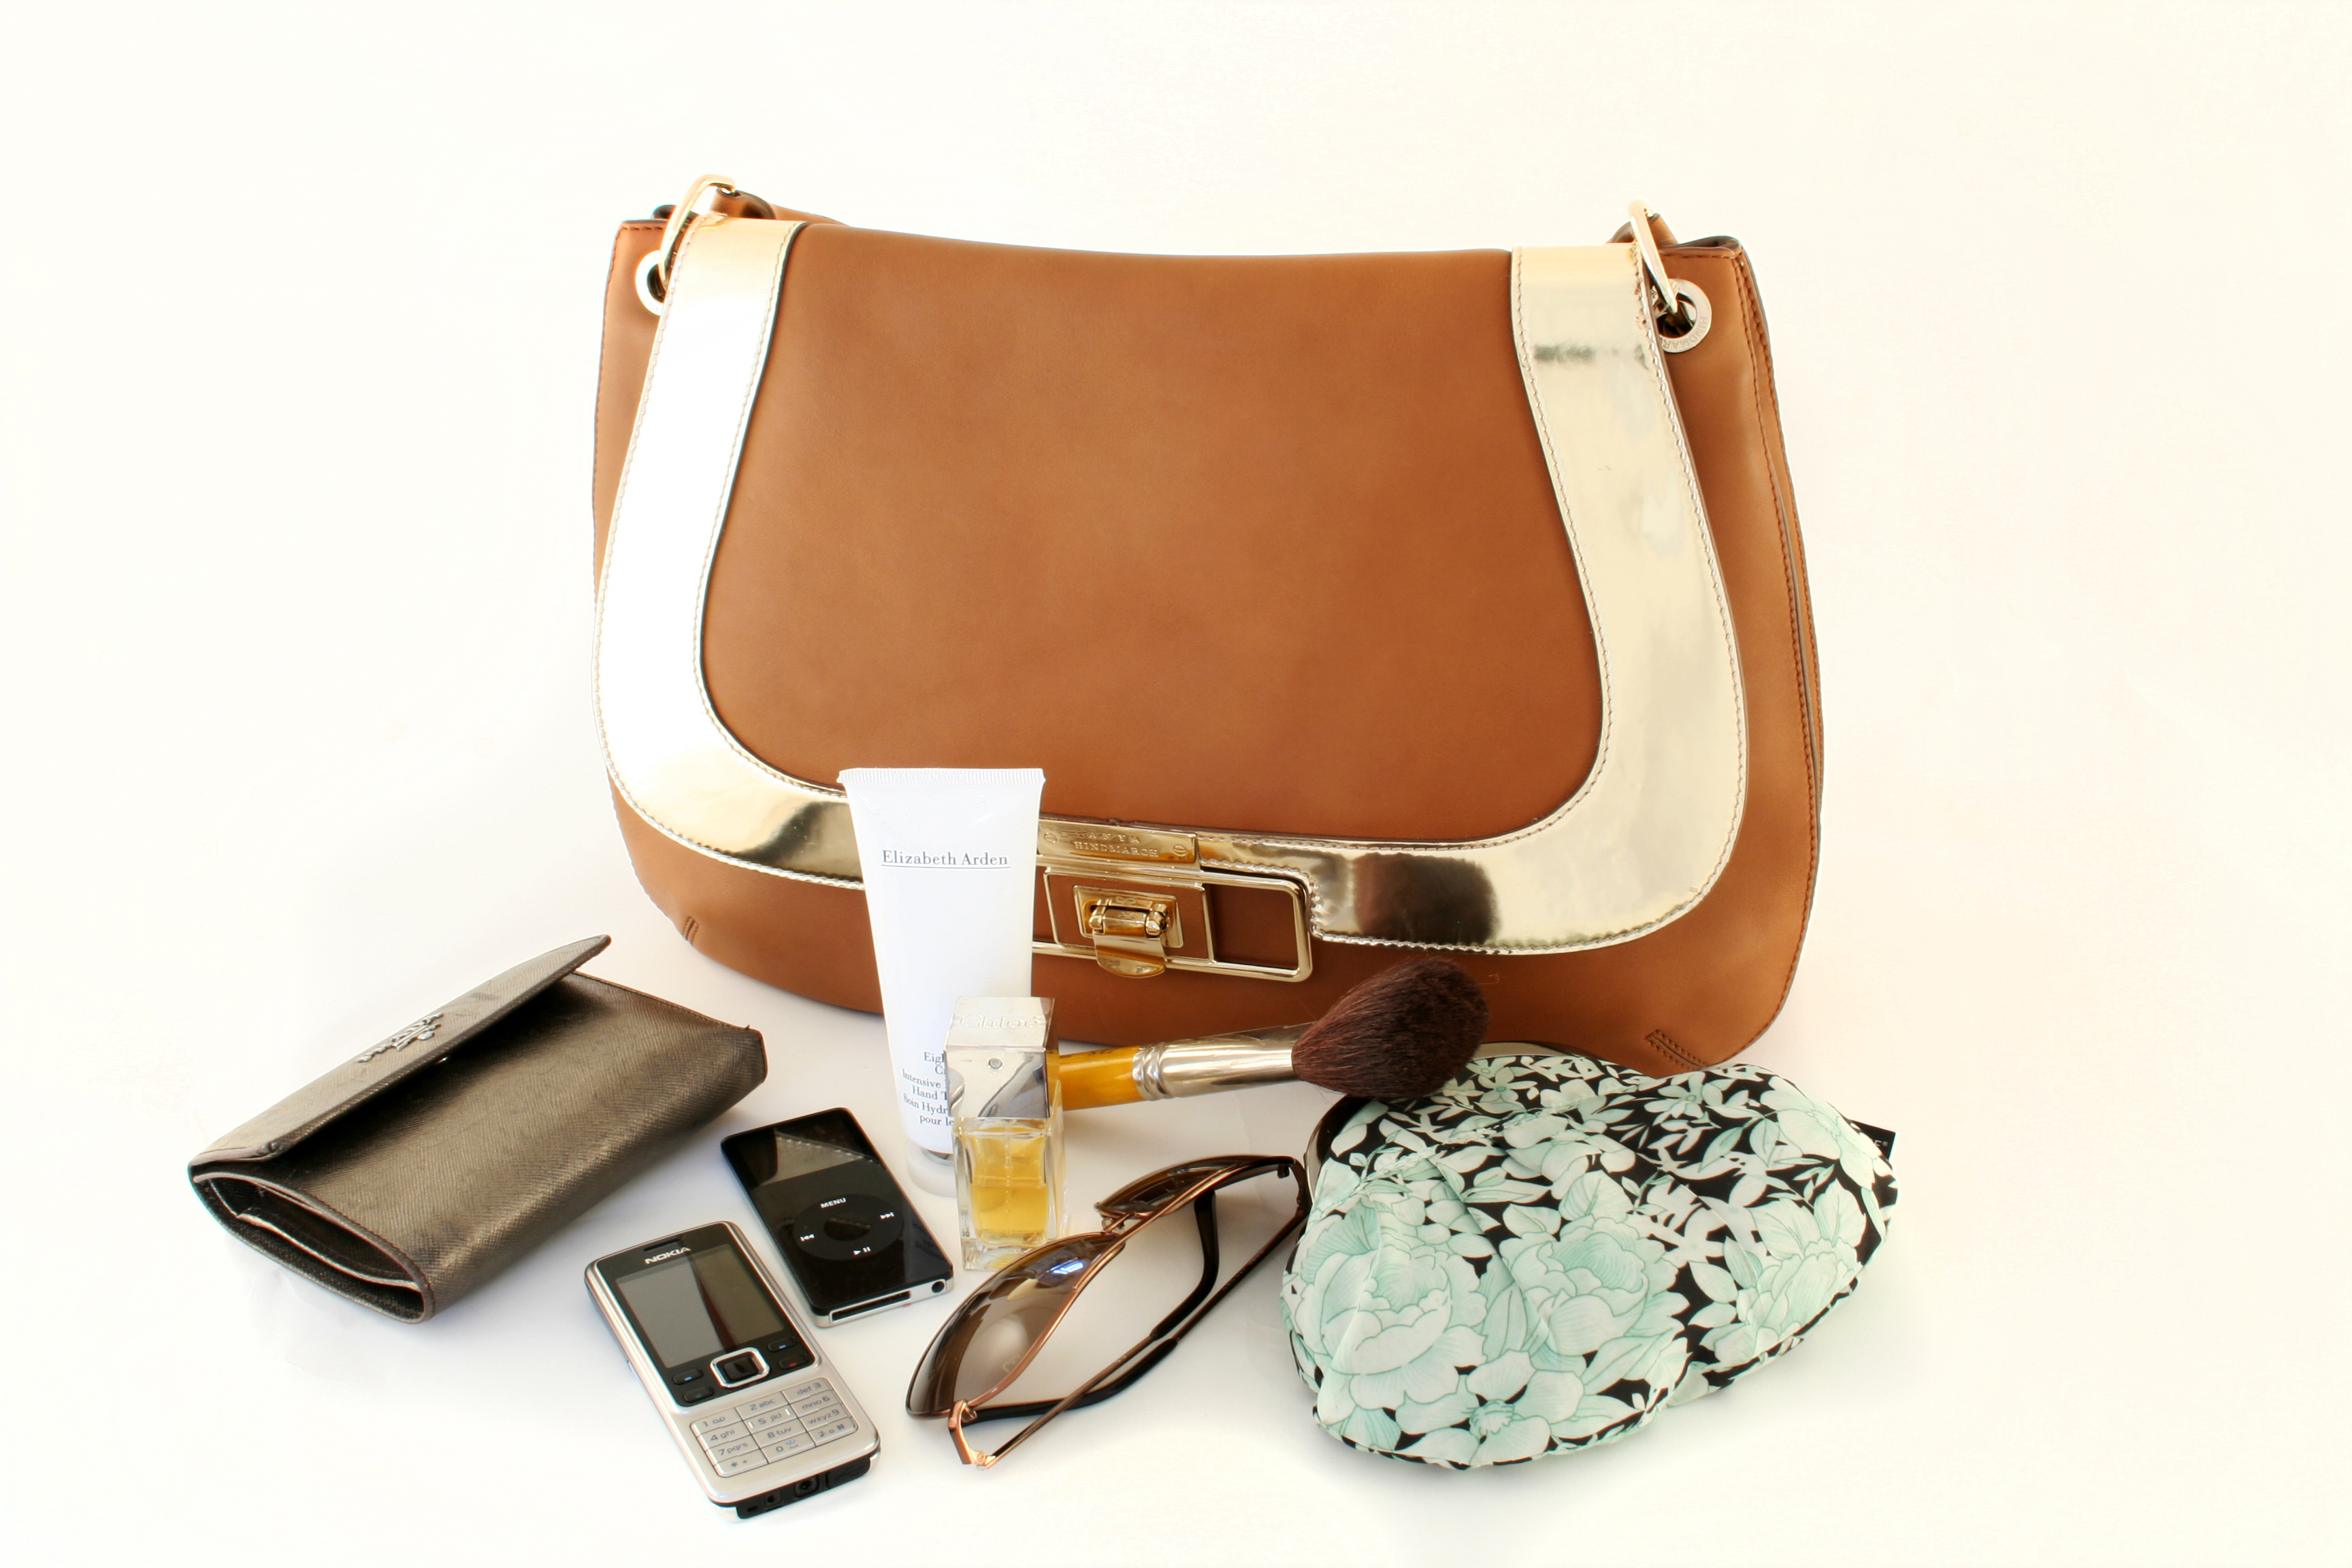 What do the contents of your handbag say about you?